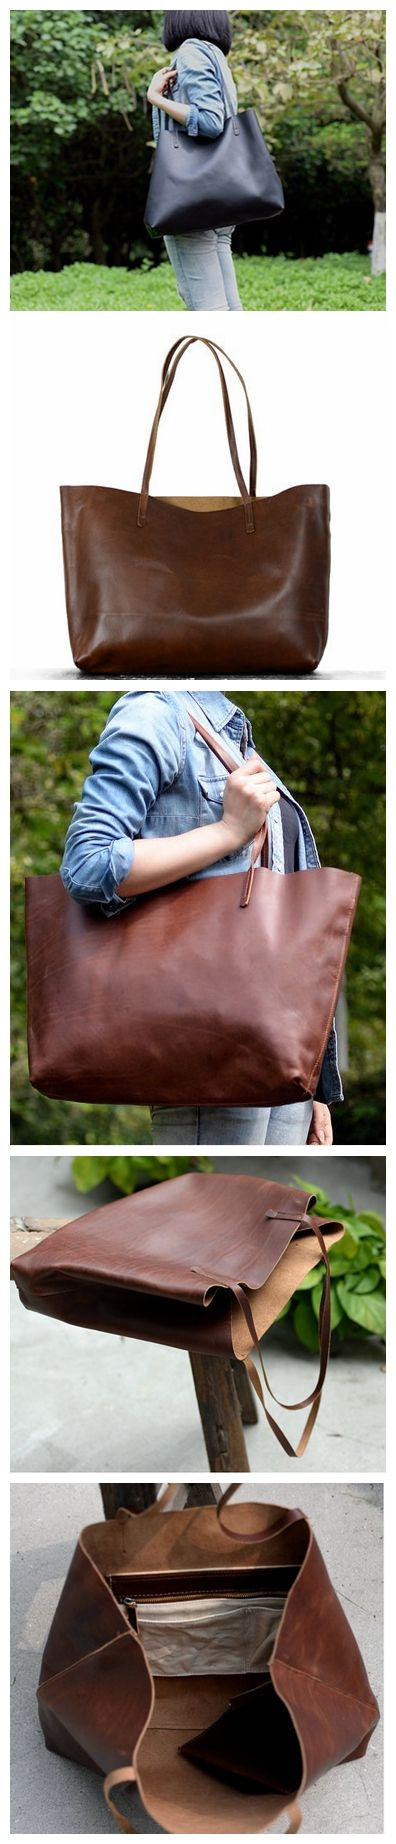 VINTAGE GENUINE LEATHER WOMEN TOTE BAG, SHOPPING BAG, SHOULDER BAG